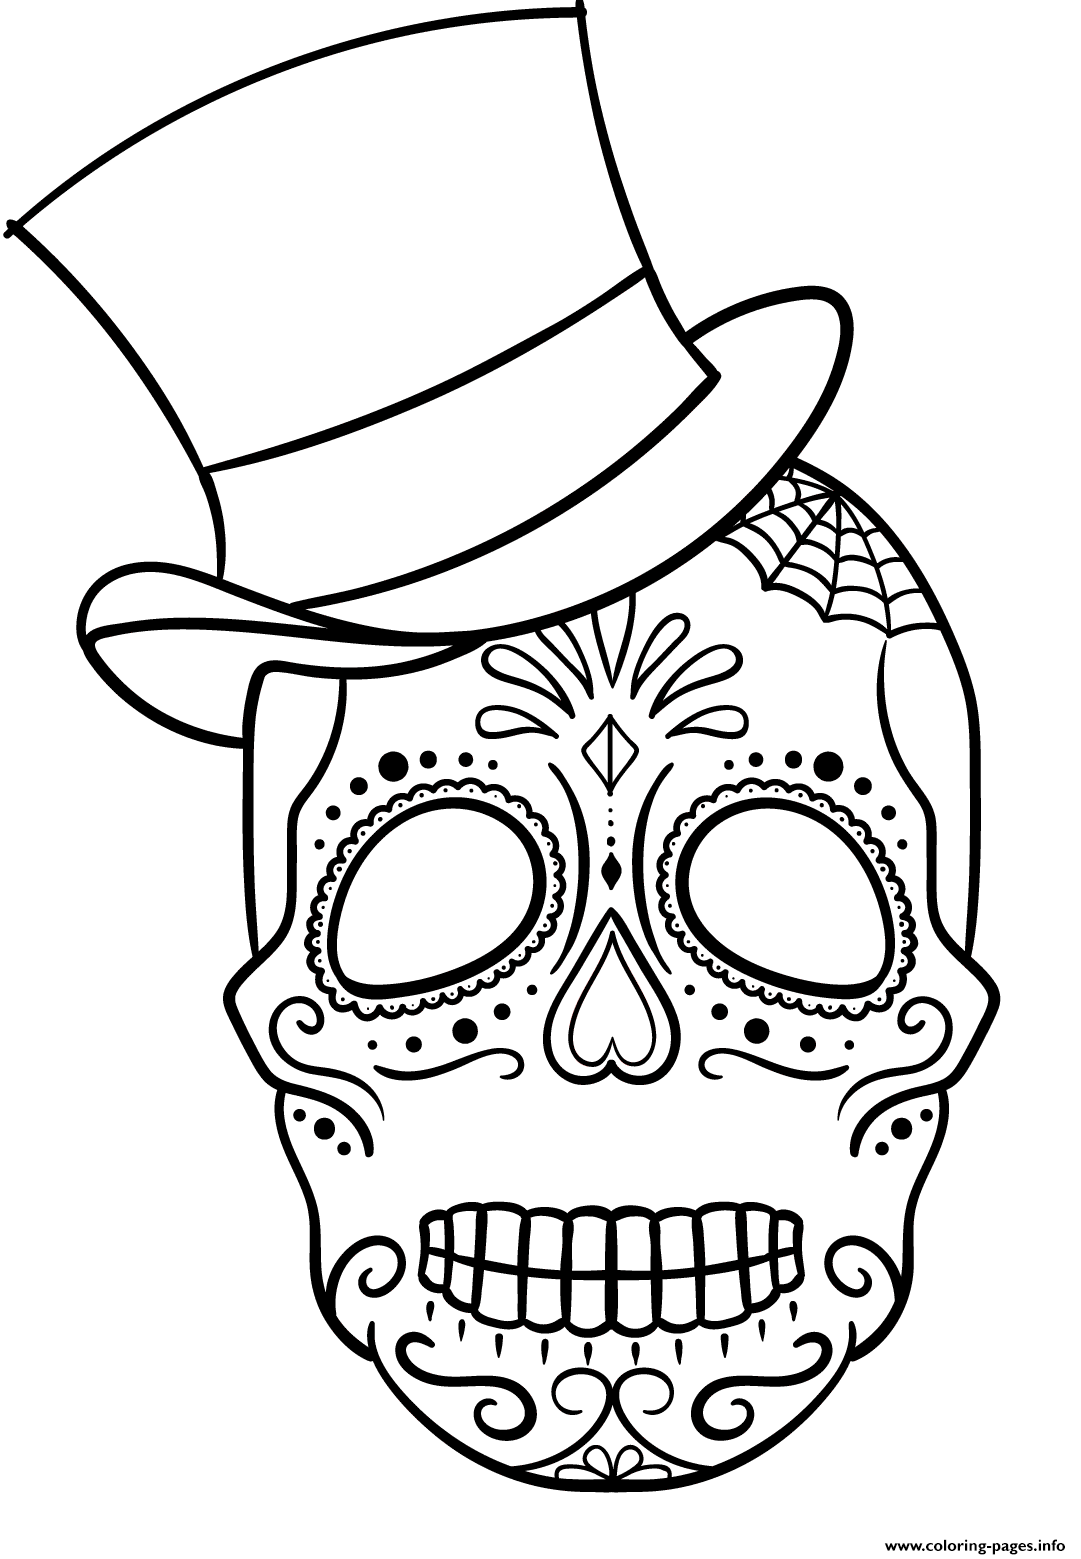 Coloring Page Candy Skull